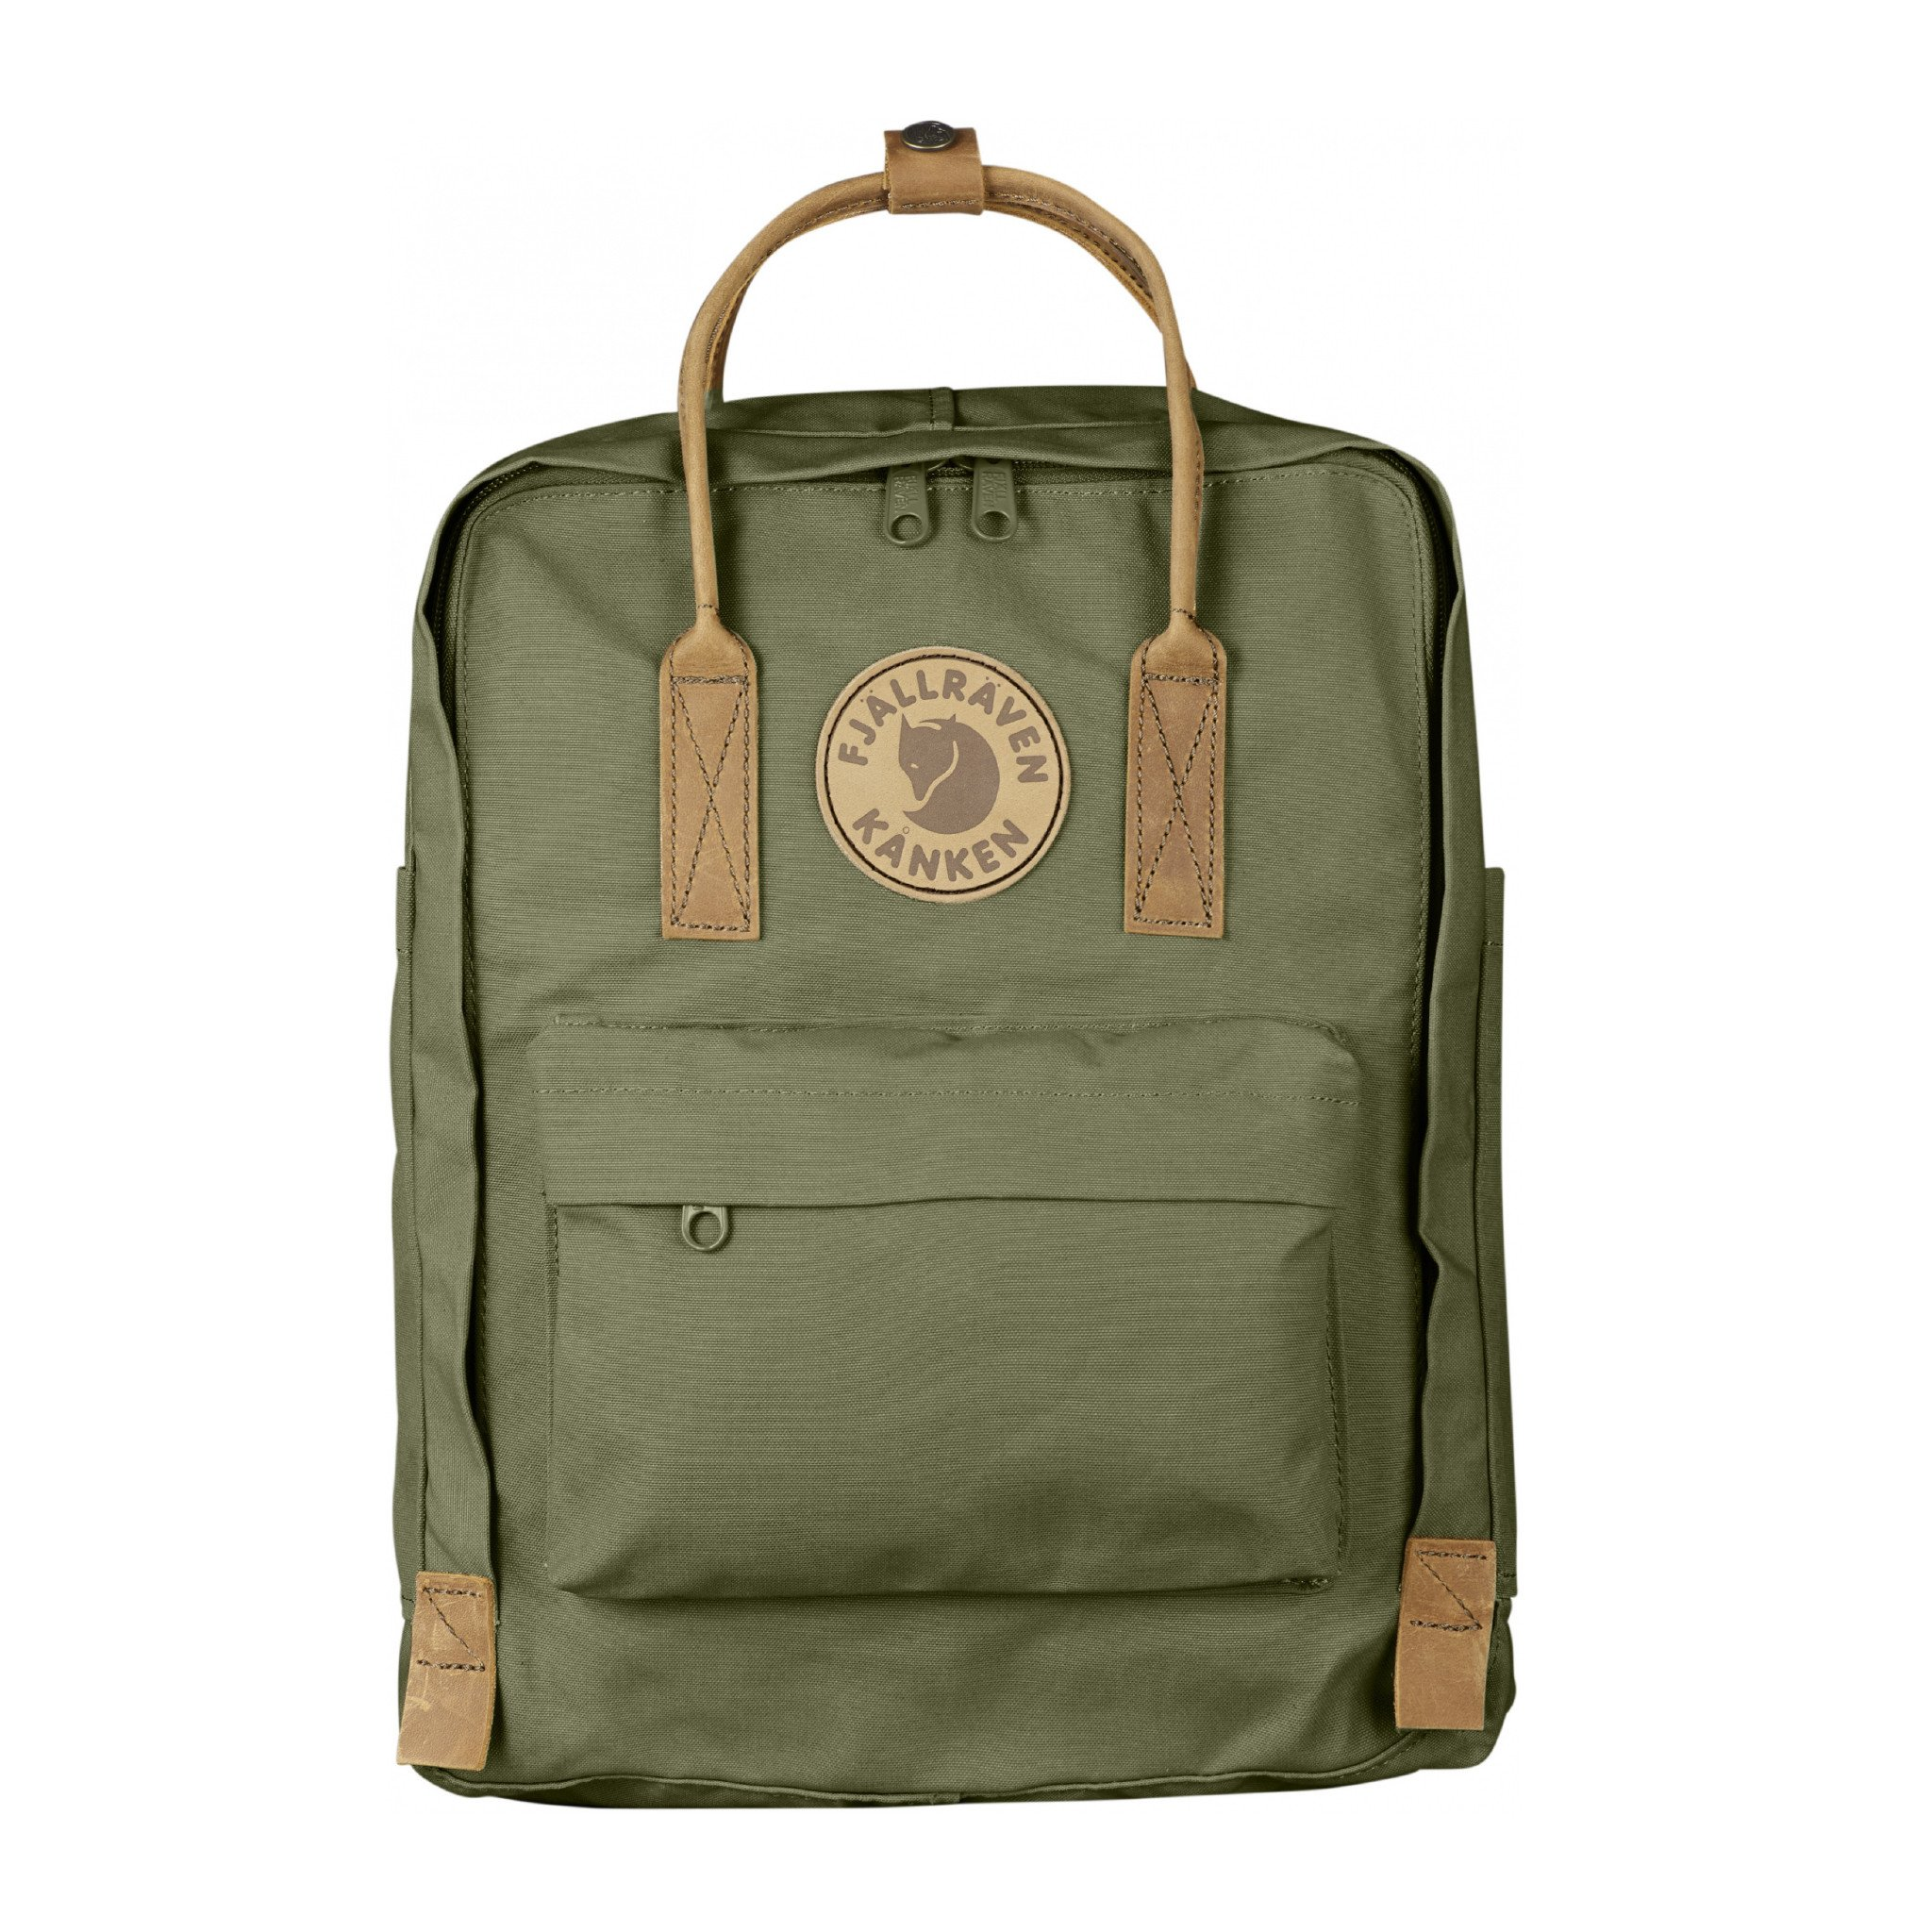 Five. - Brand name backpacks that we can embroider for you!